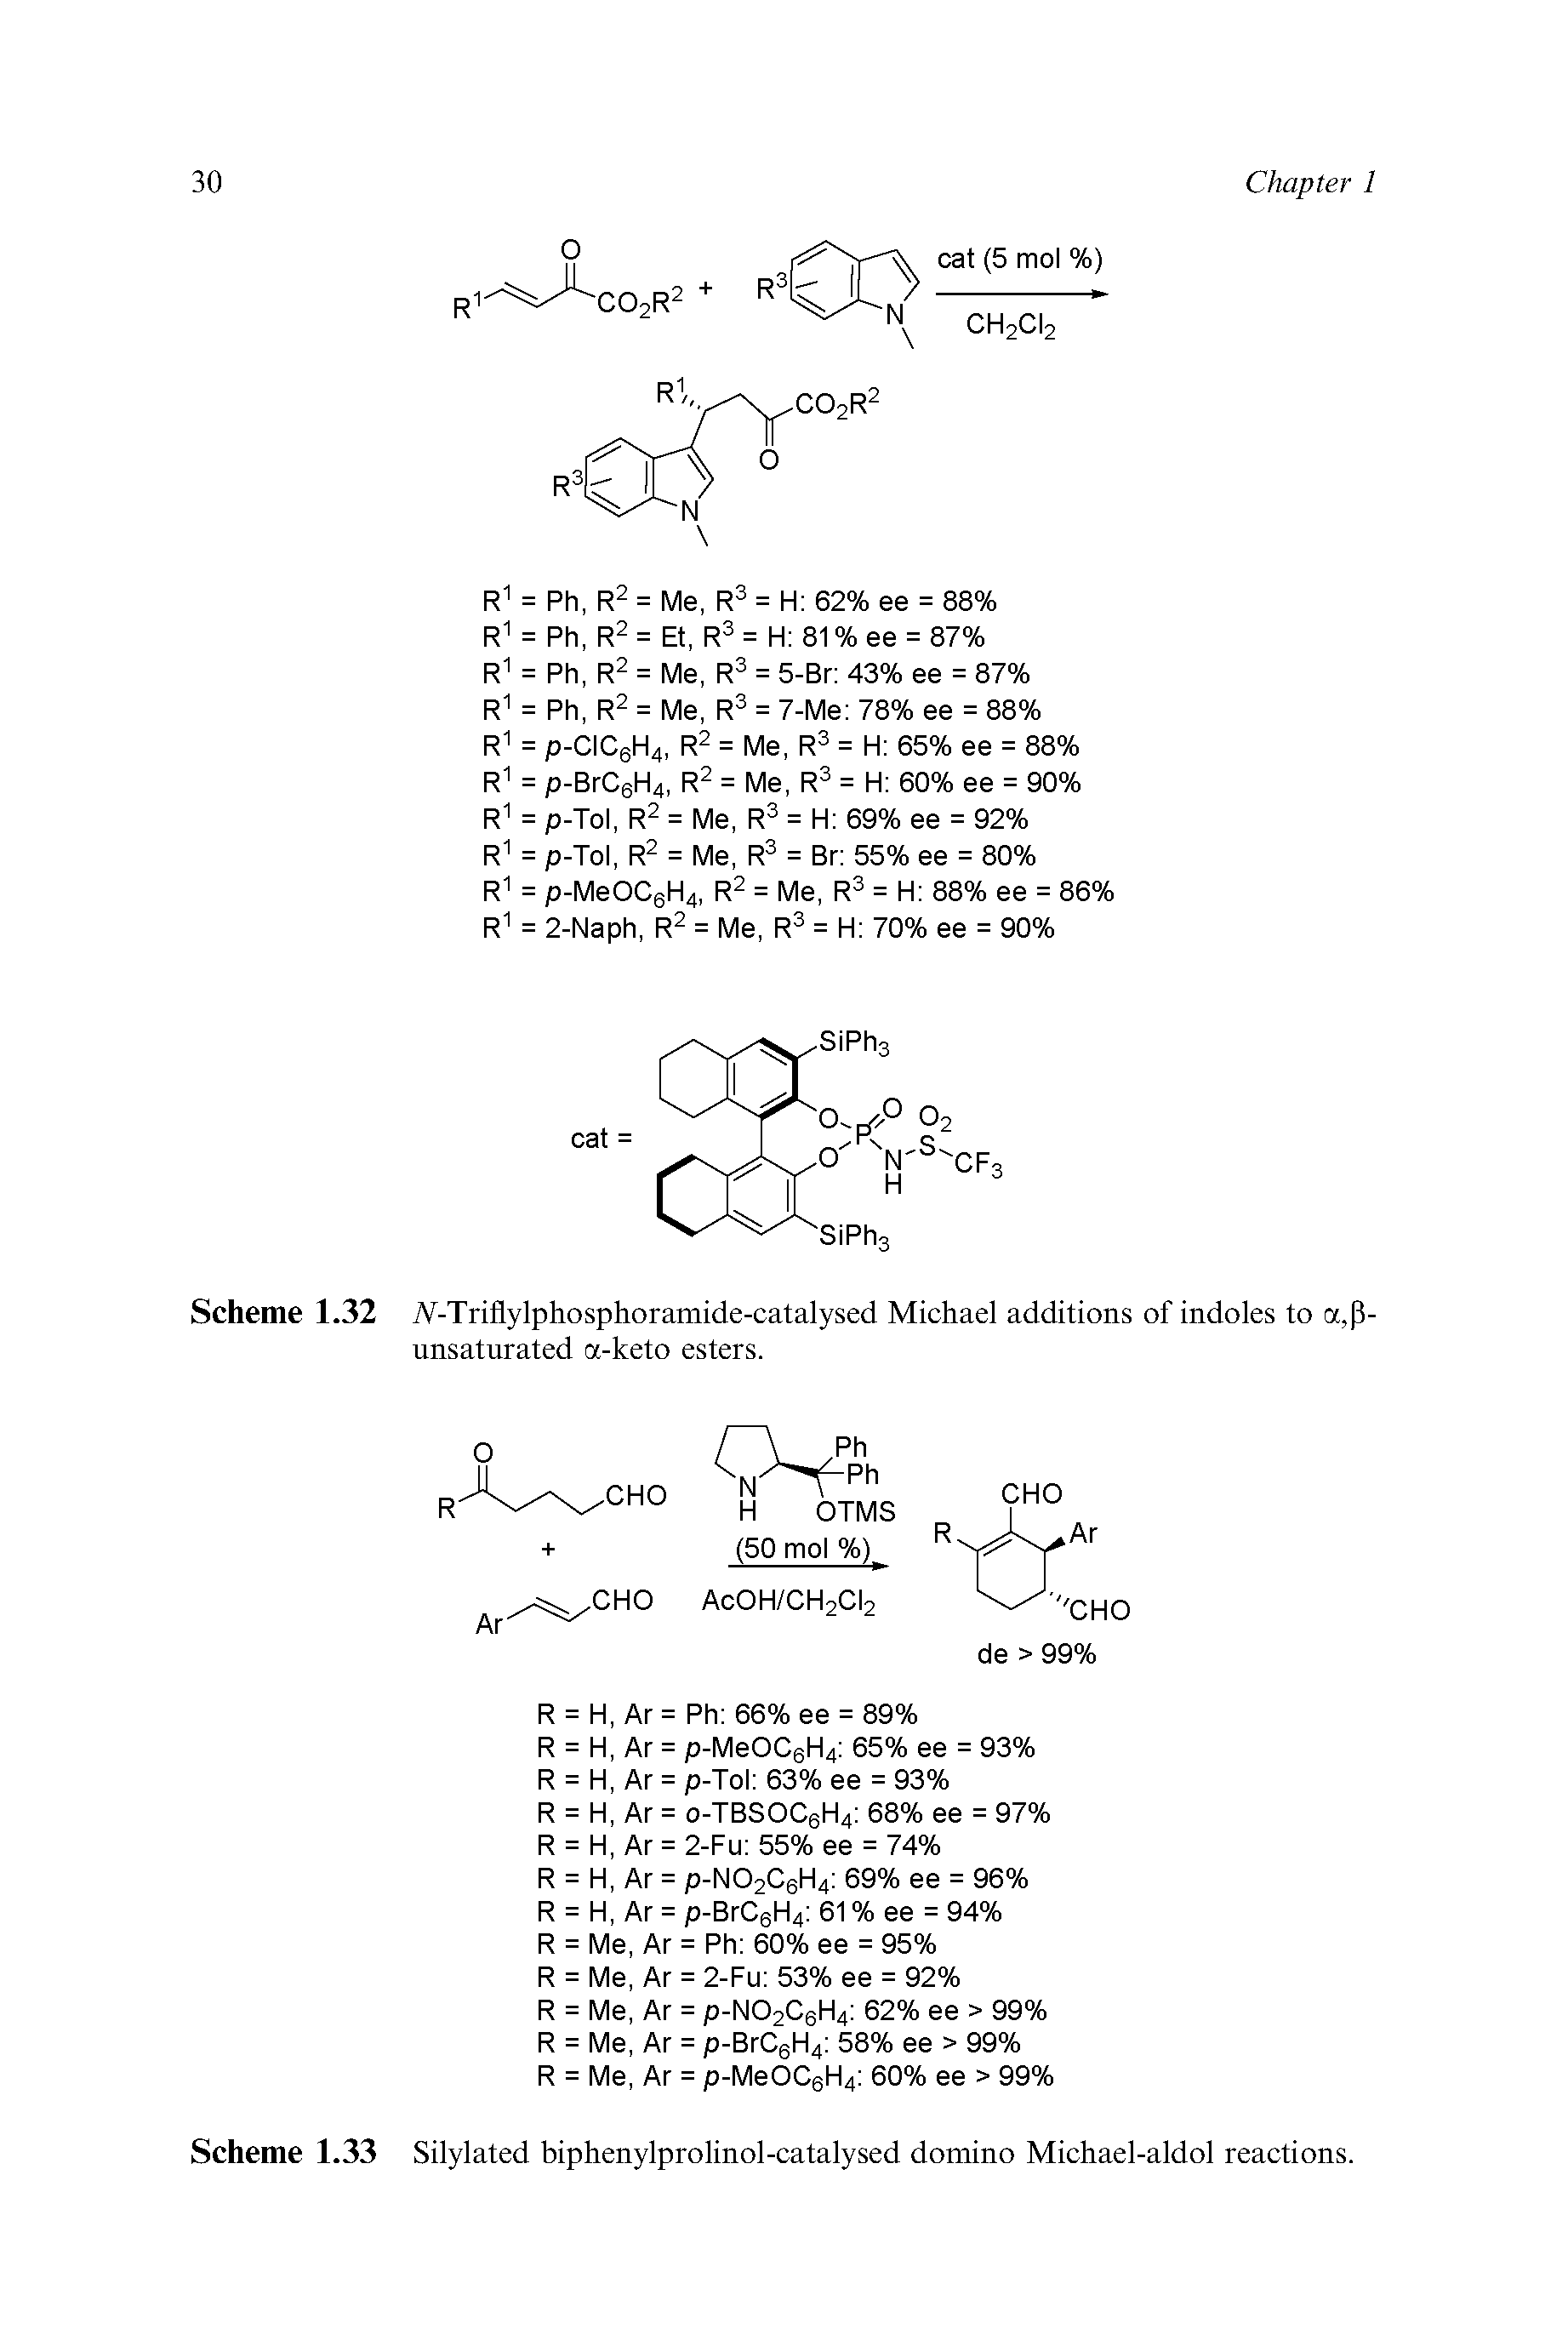 "Scheme 1.32 A -Triflylphosphoramide-catalysed <a href=""/info/michael_addition"">Michael additions</a> of indoles to a,P-unsaturated a-keto esters."